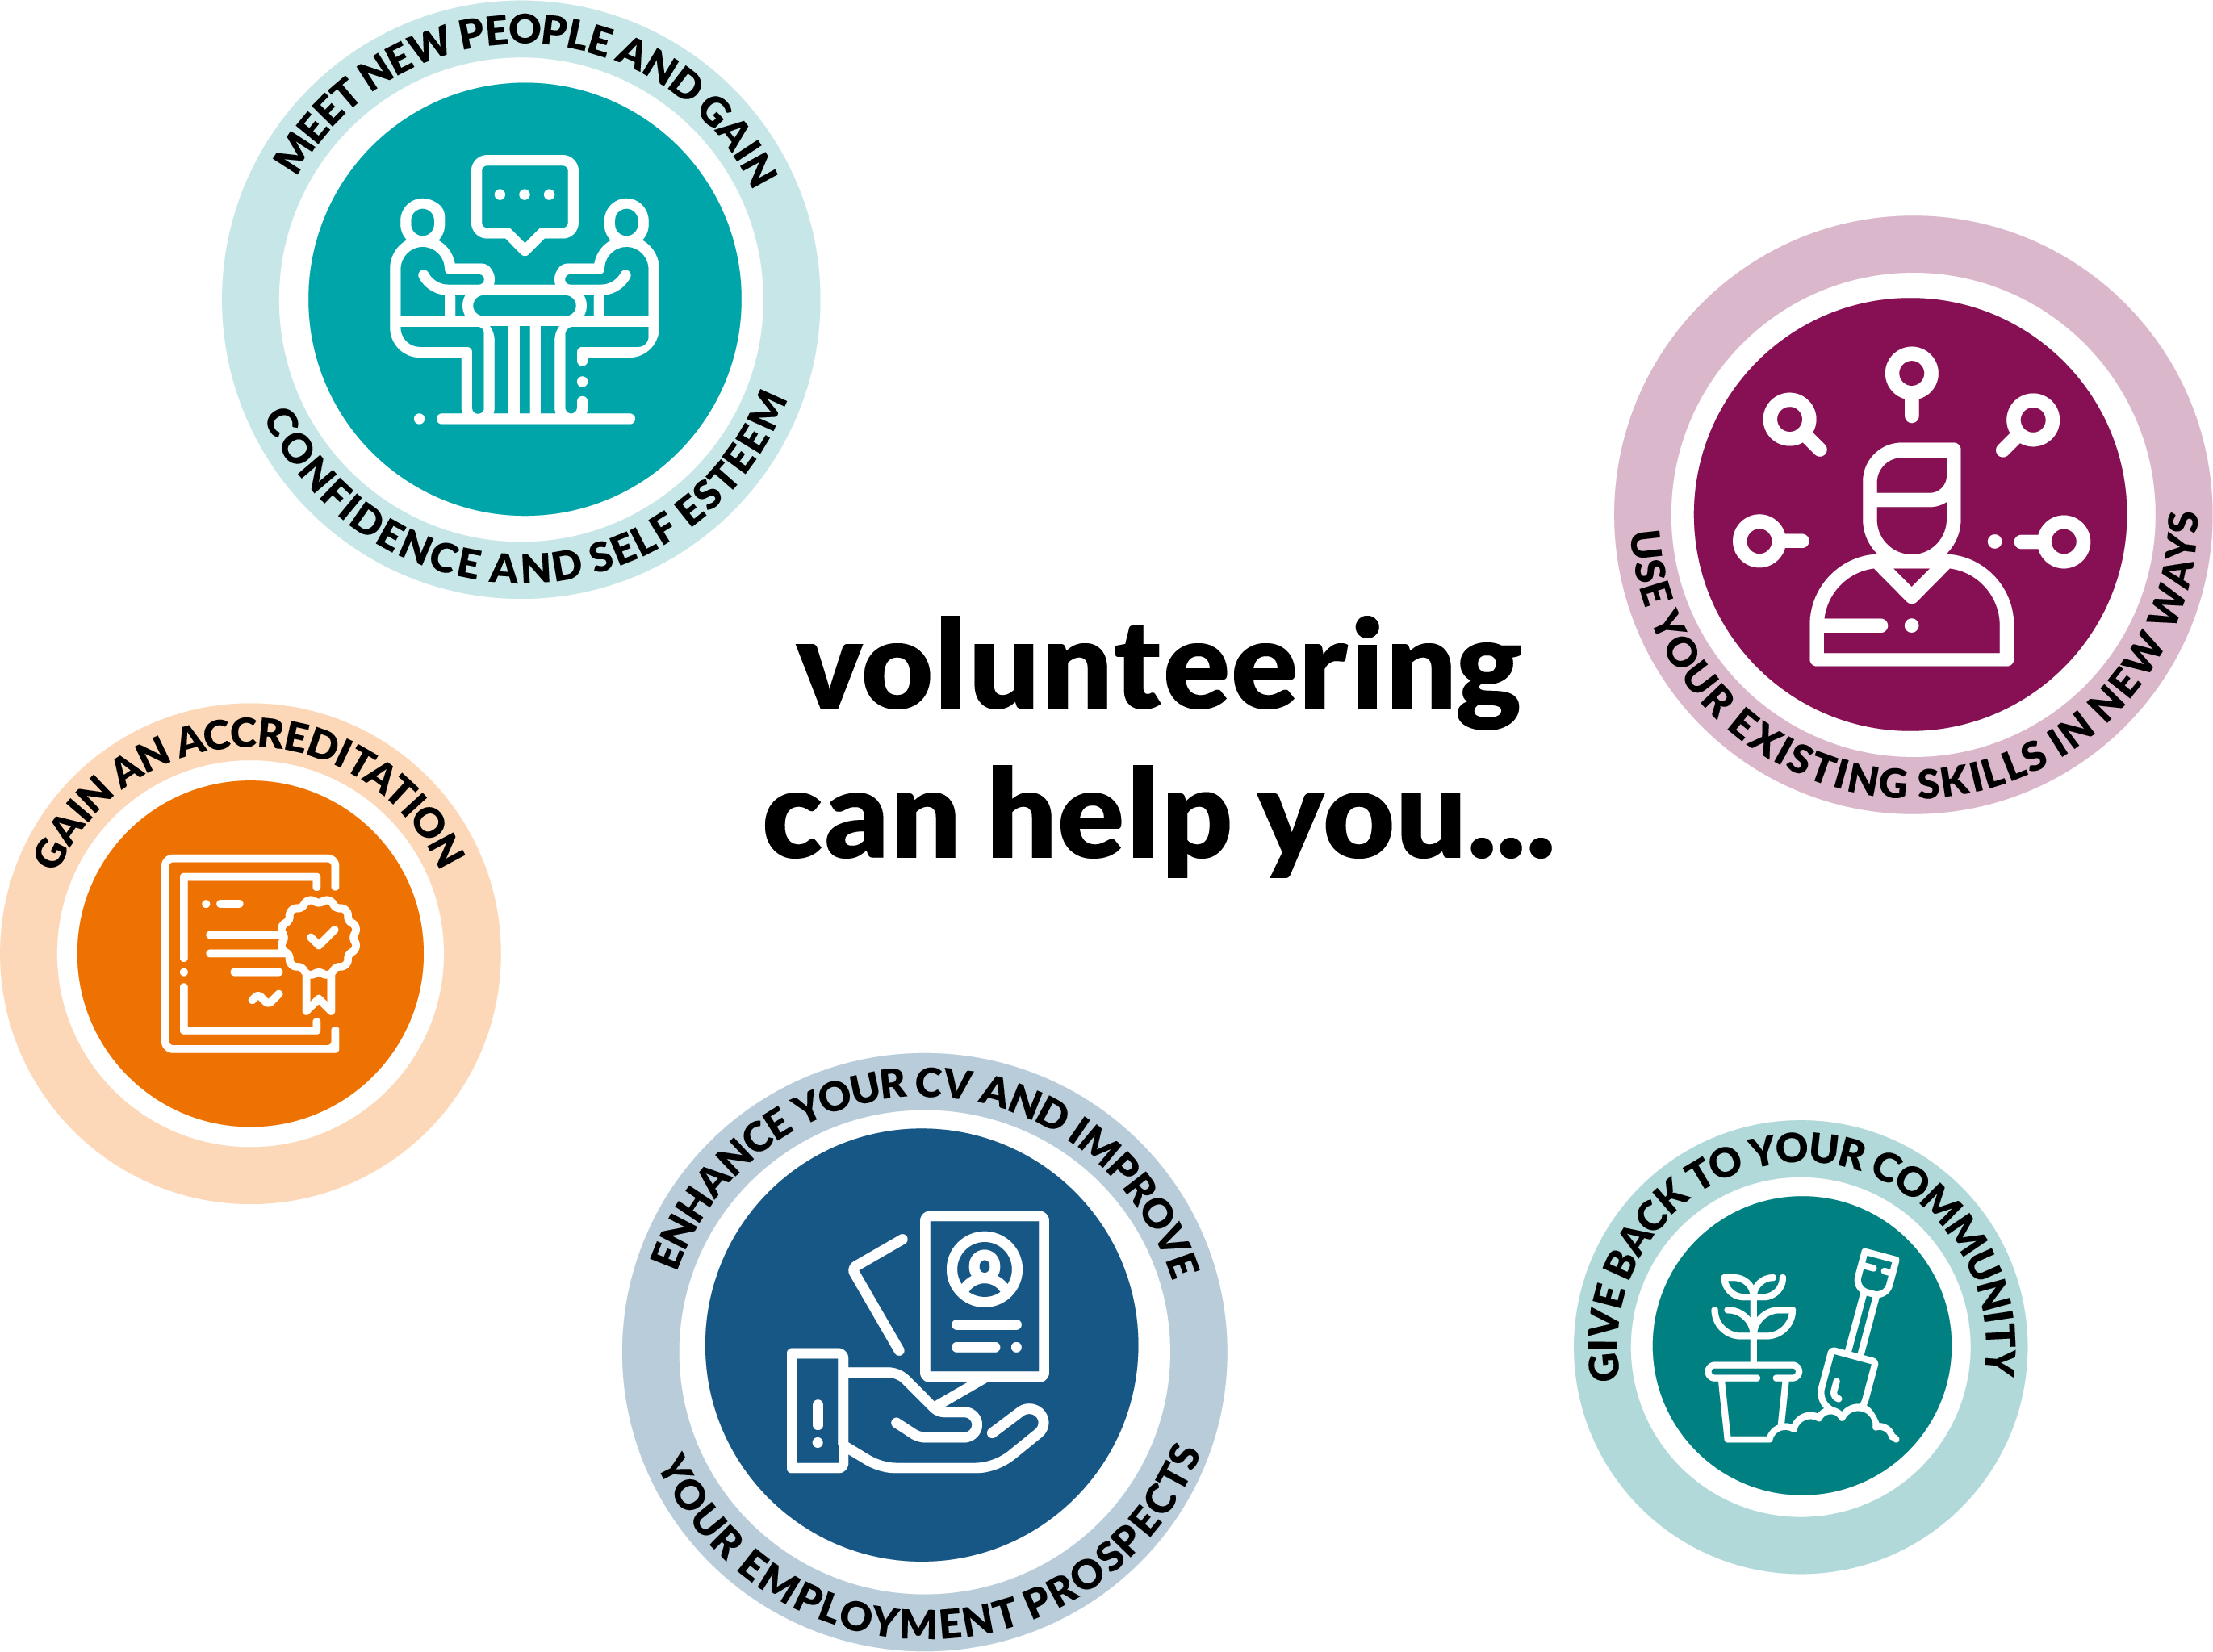 Volunteering can help you...